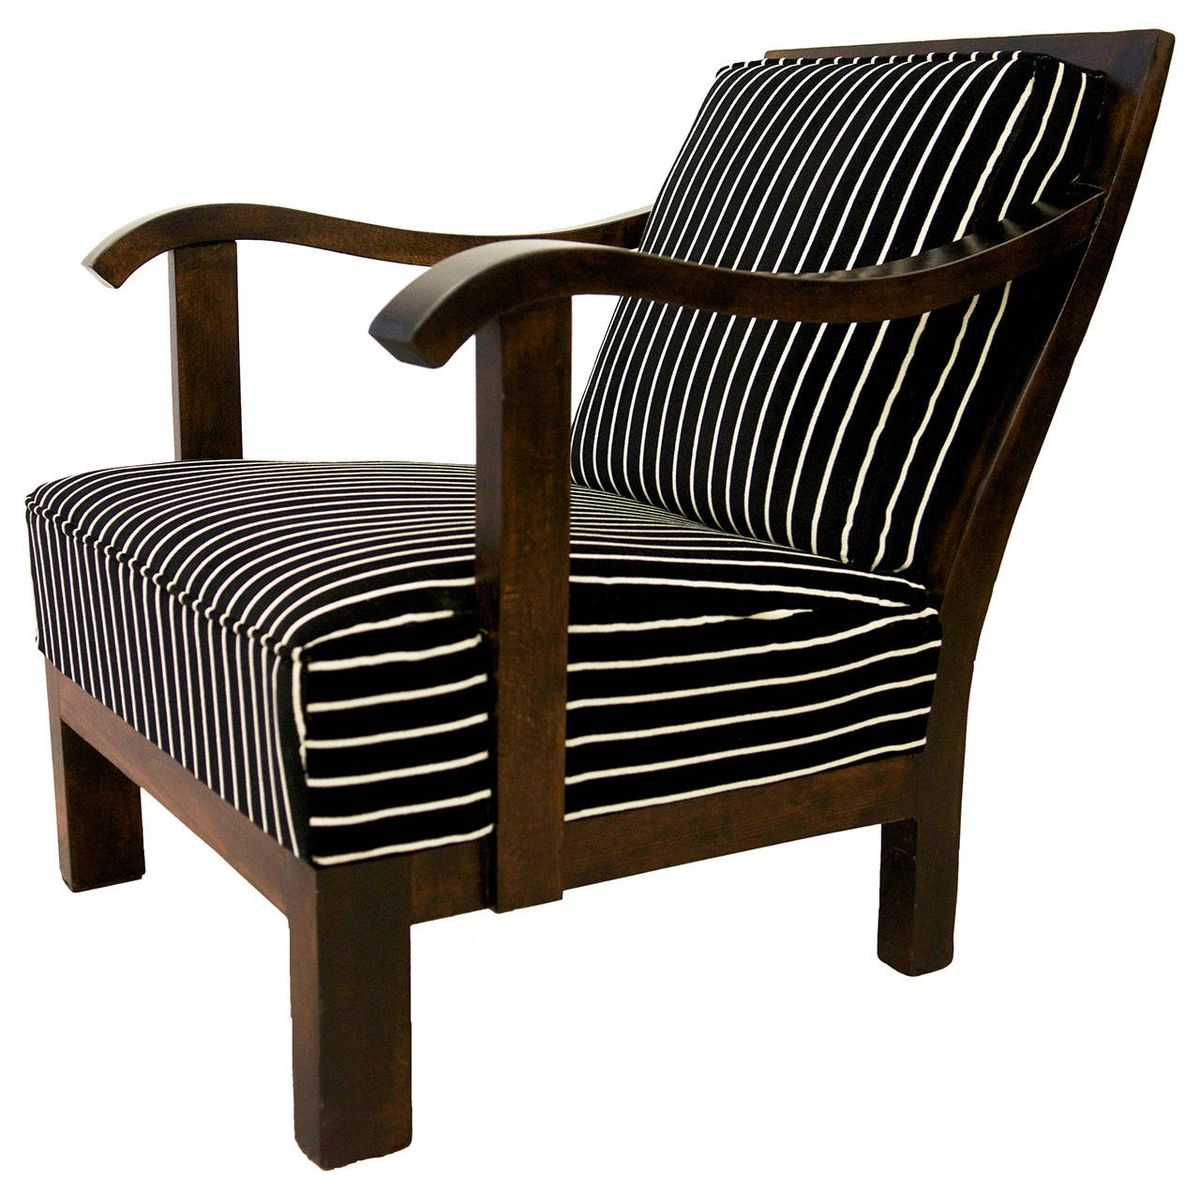 Austrian art deco era lounge chair for sale at pamono for Art deco style lounge